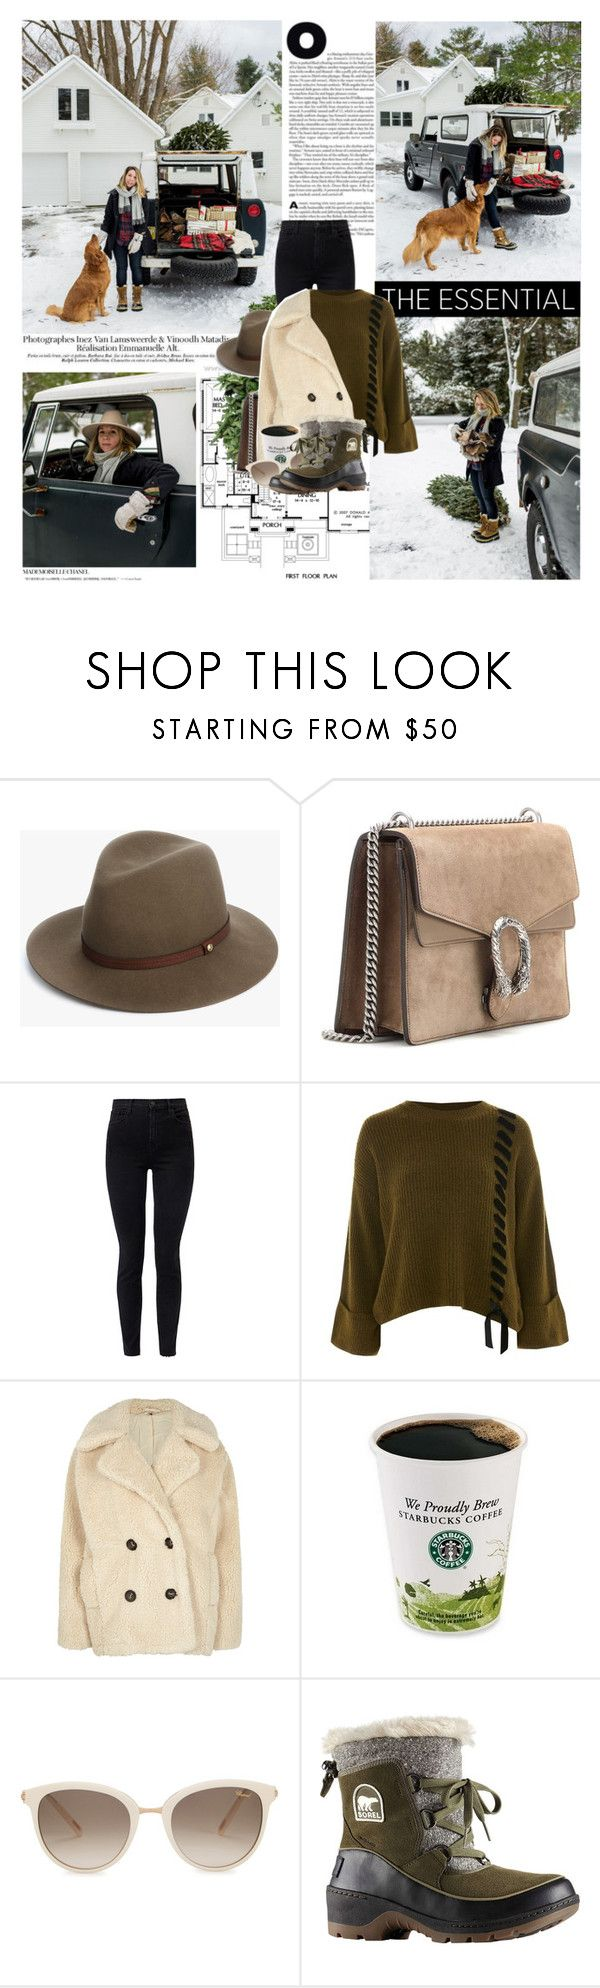 """""""Fill your life with good vibes and positivity, and the negative forces will not affect you. Have fun. Laugh often. Love deeply. Life truly is a gift."""" by mars ❤ liked on Polyvore featuring Eco Style, rag & bone, Gucci, J Brand, Topshop, Free People, Chopard, SOREL and Chanel"""